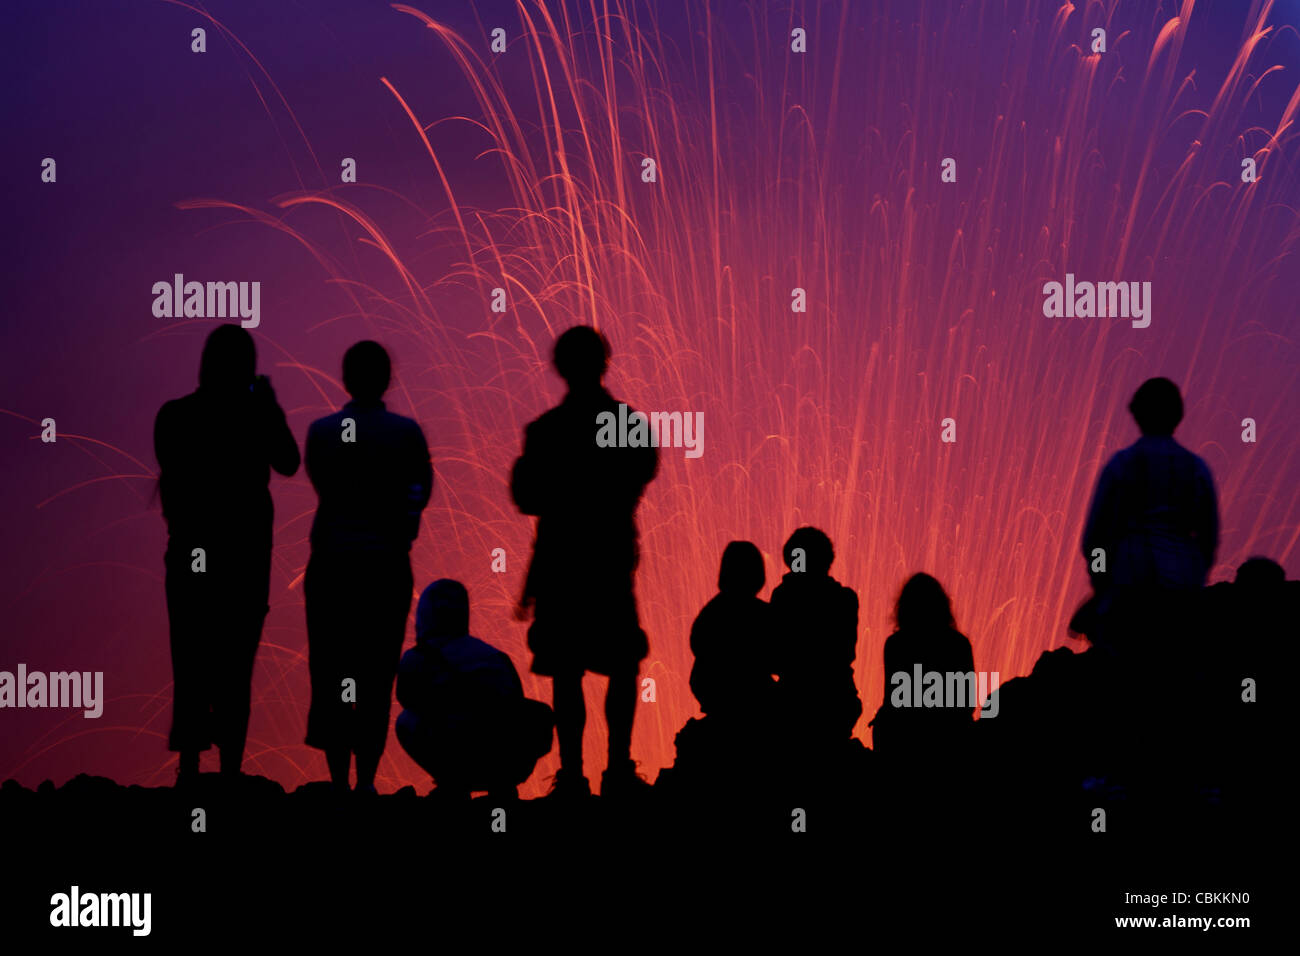 March 6, 2010 - Silhouette of tourists observing the Strombolian eruption of Yasur Volcano, Tanna Island, Vanuatu. - Stock Image